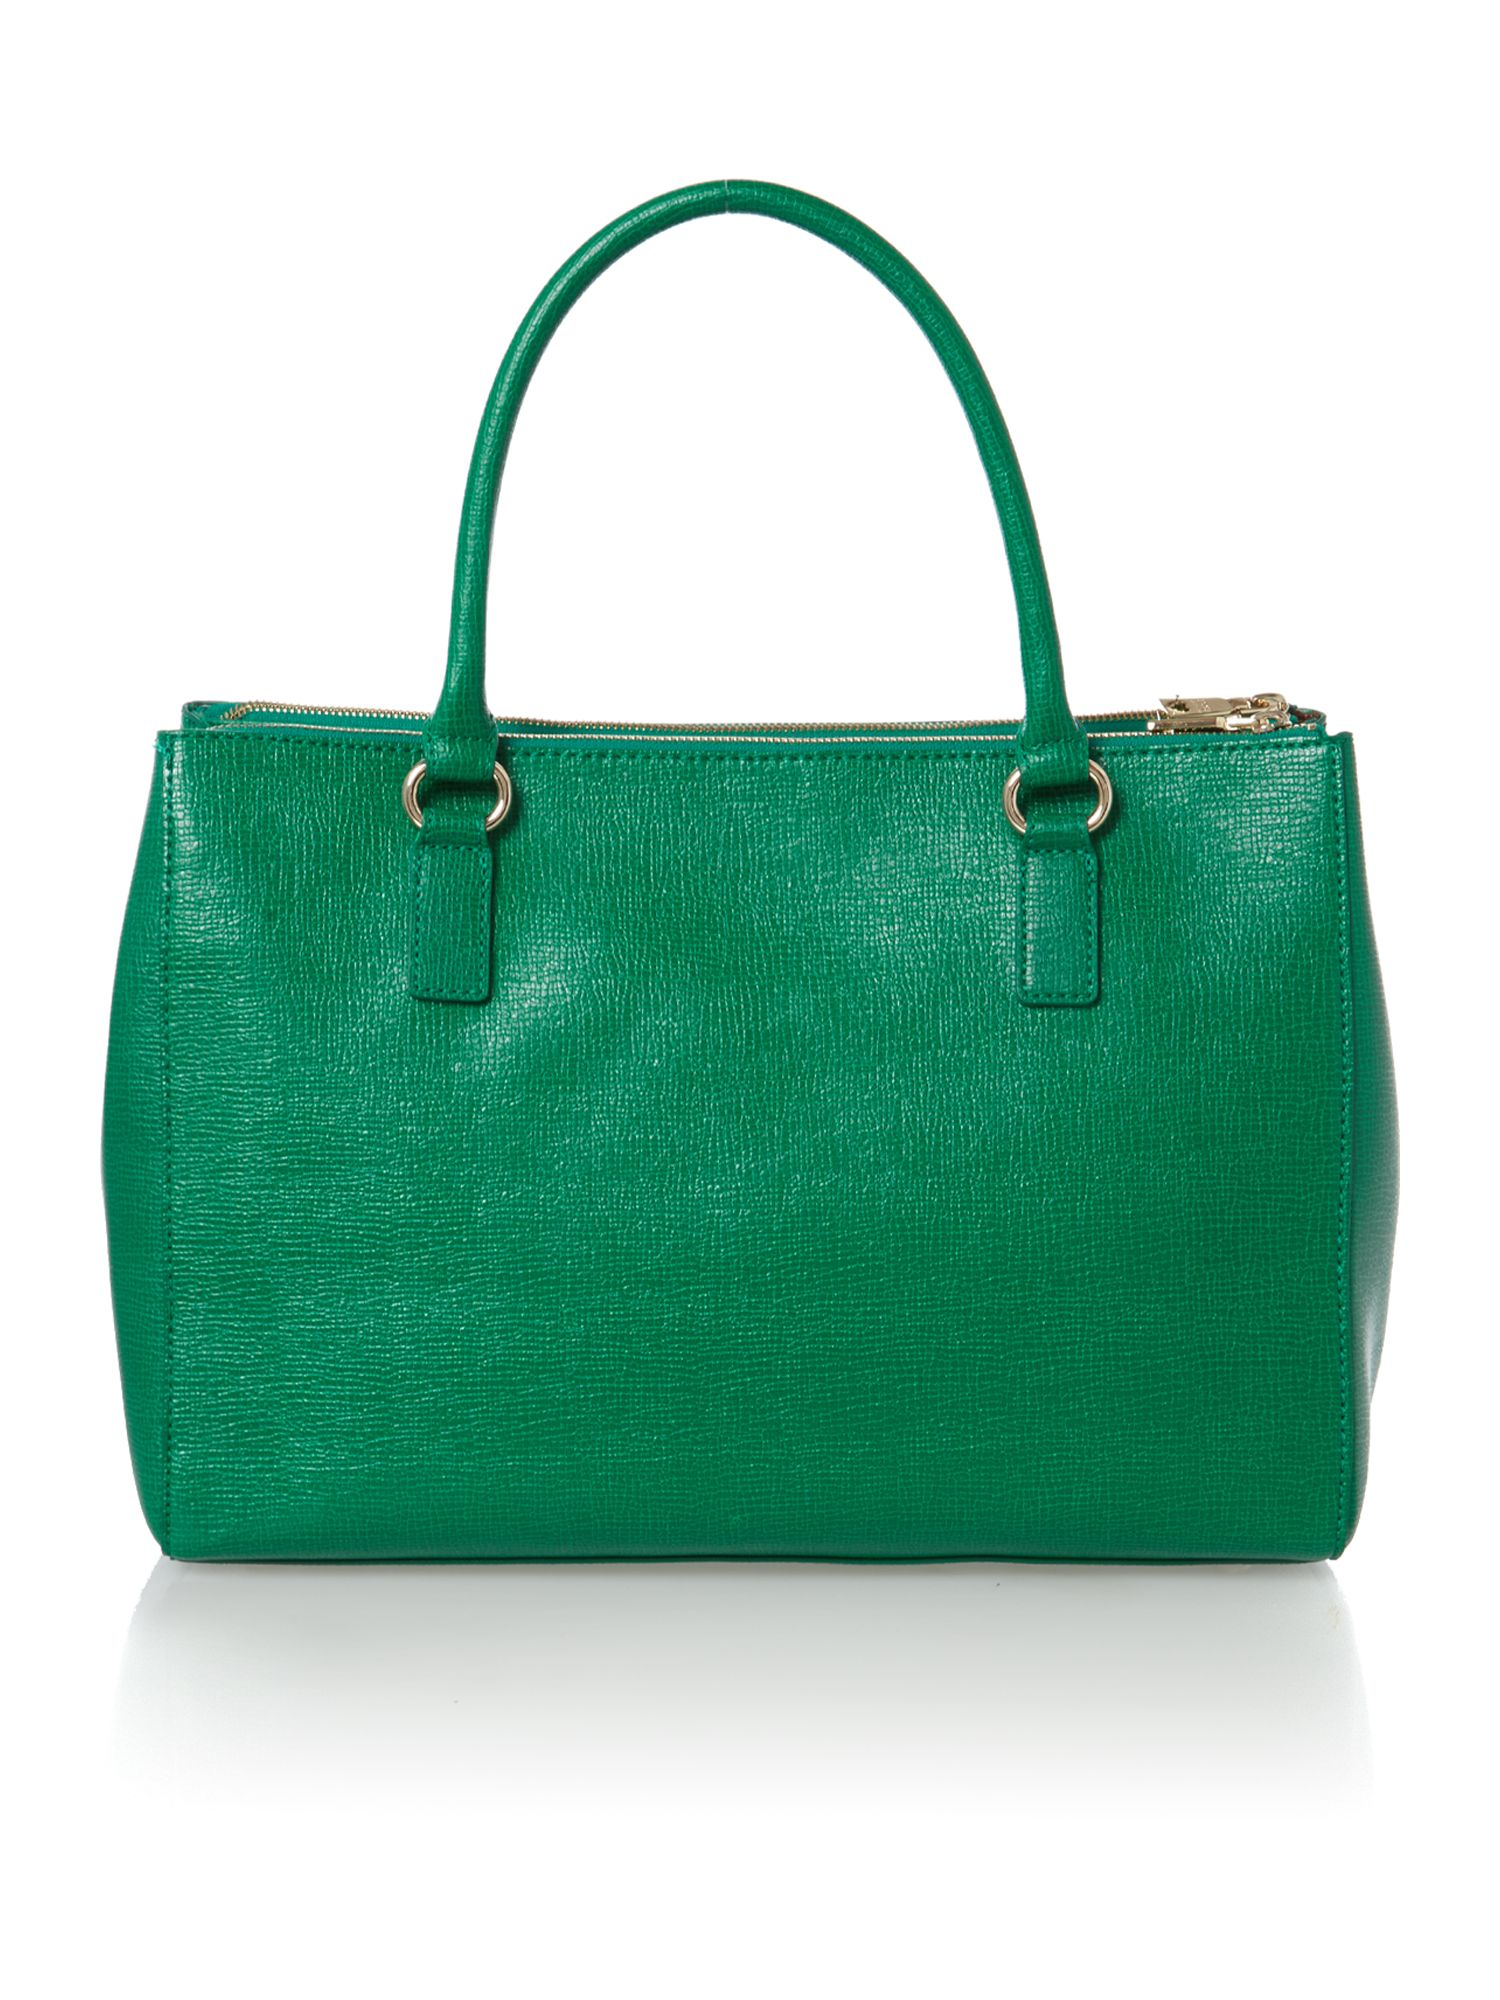 Green large saffiano tote bag